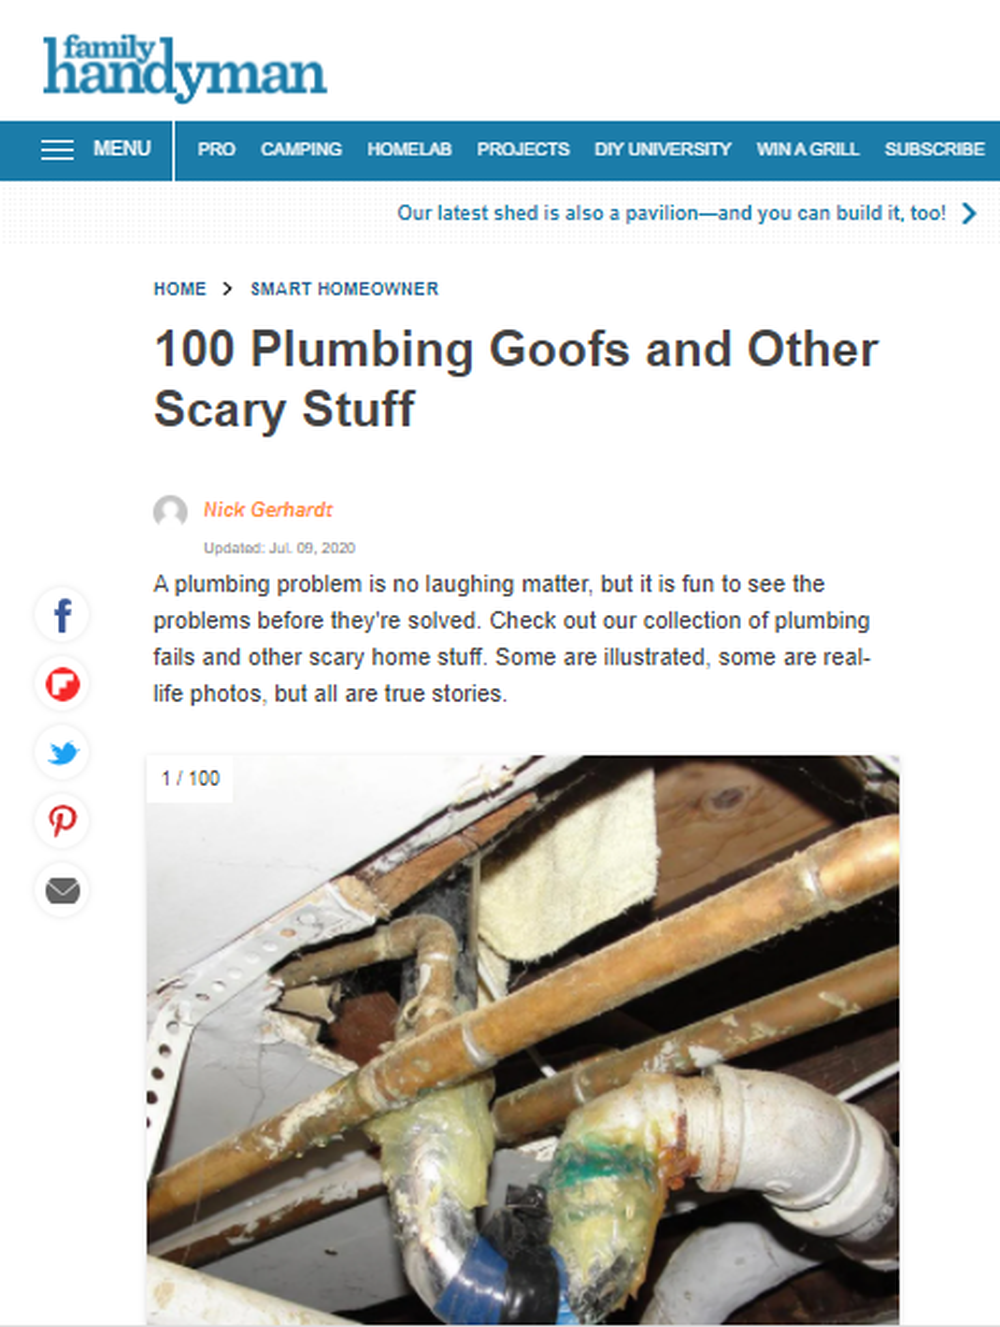 100-Plumbing-Fails-and-Other-Scary-Stuff-Family-Handyman.png